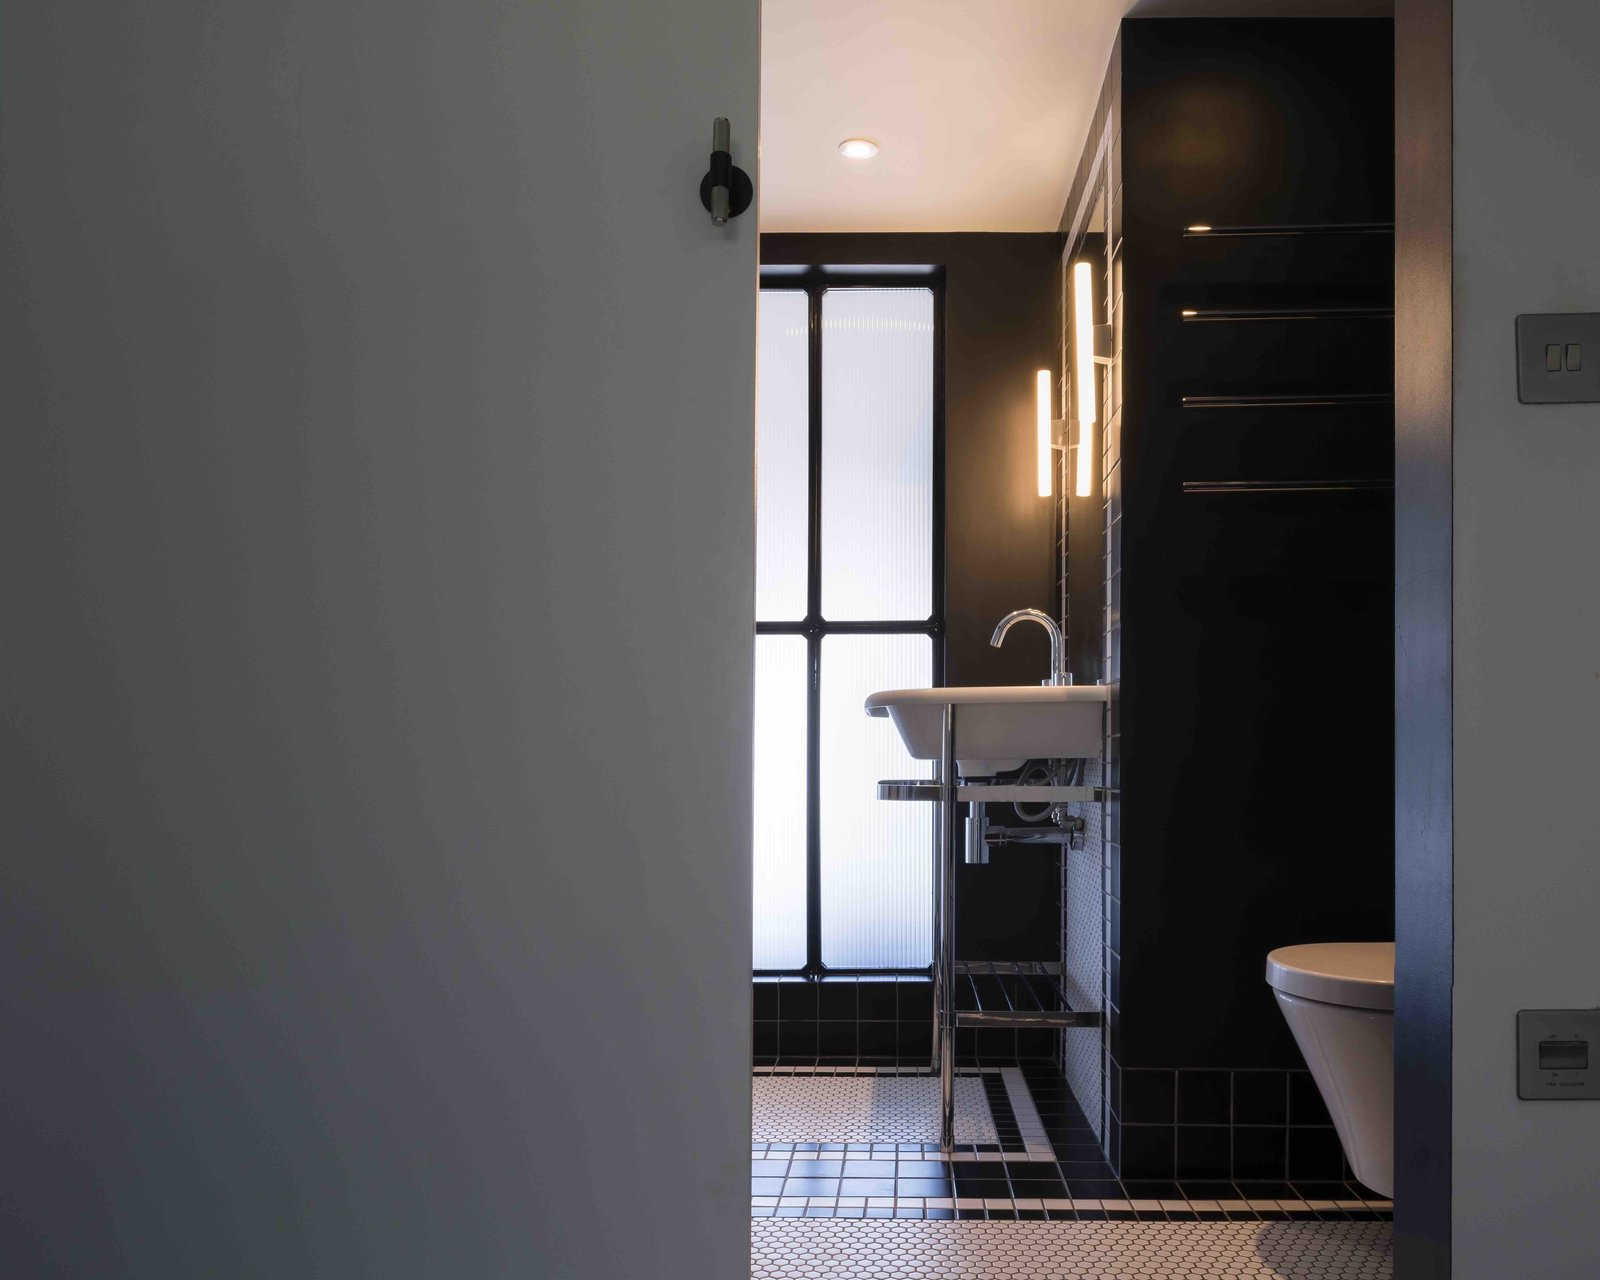 Tagged: Bath Room, Ceramic Tile Floor, One Piece Toilet, Pedestal Sink, Ceramic Tile Wall, and Wall Lighting.  Photo 9 of 12 in An Old Grain Warehouse on the River Thames Is Transformed Into an Industrial-Modern Home